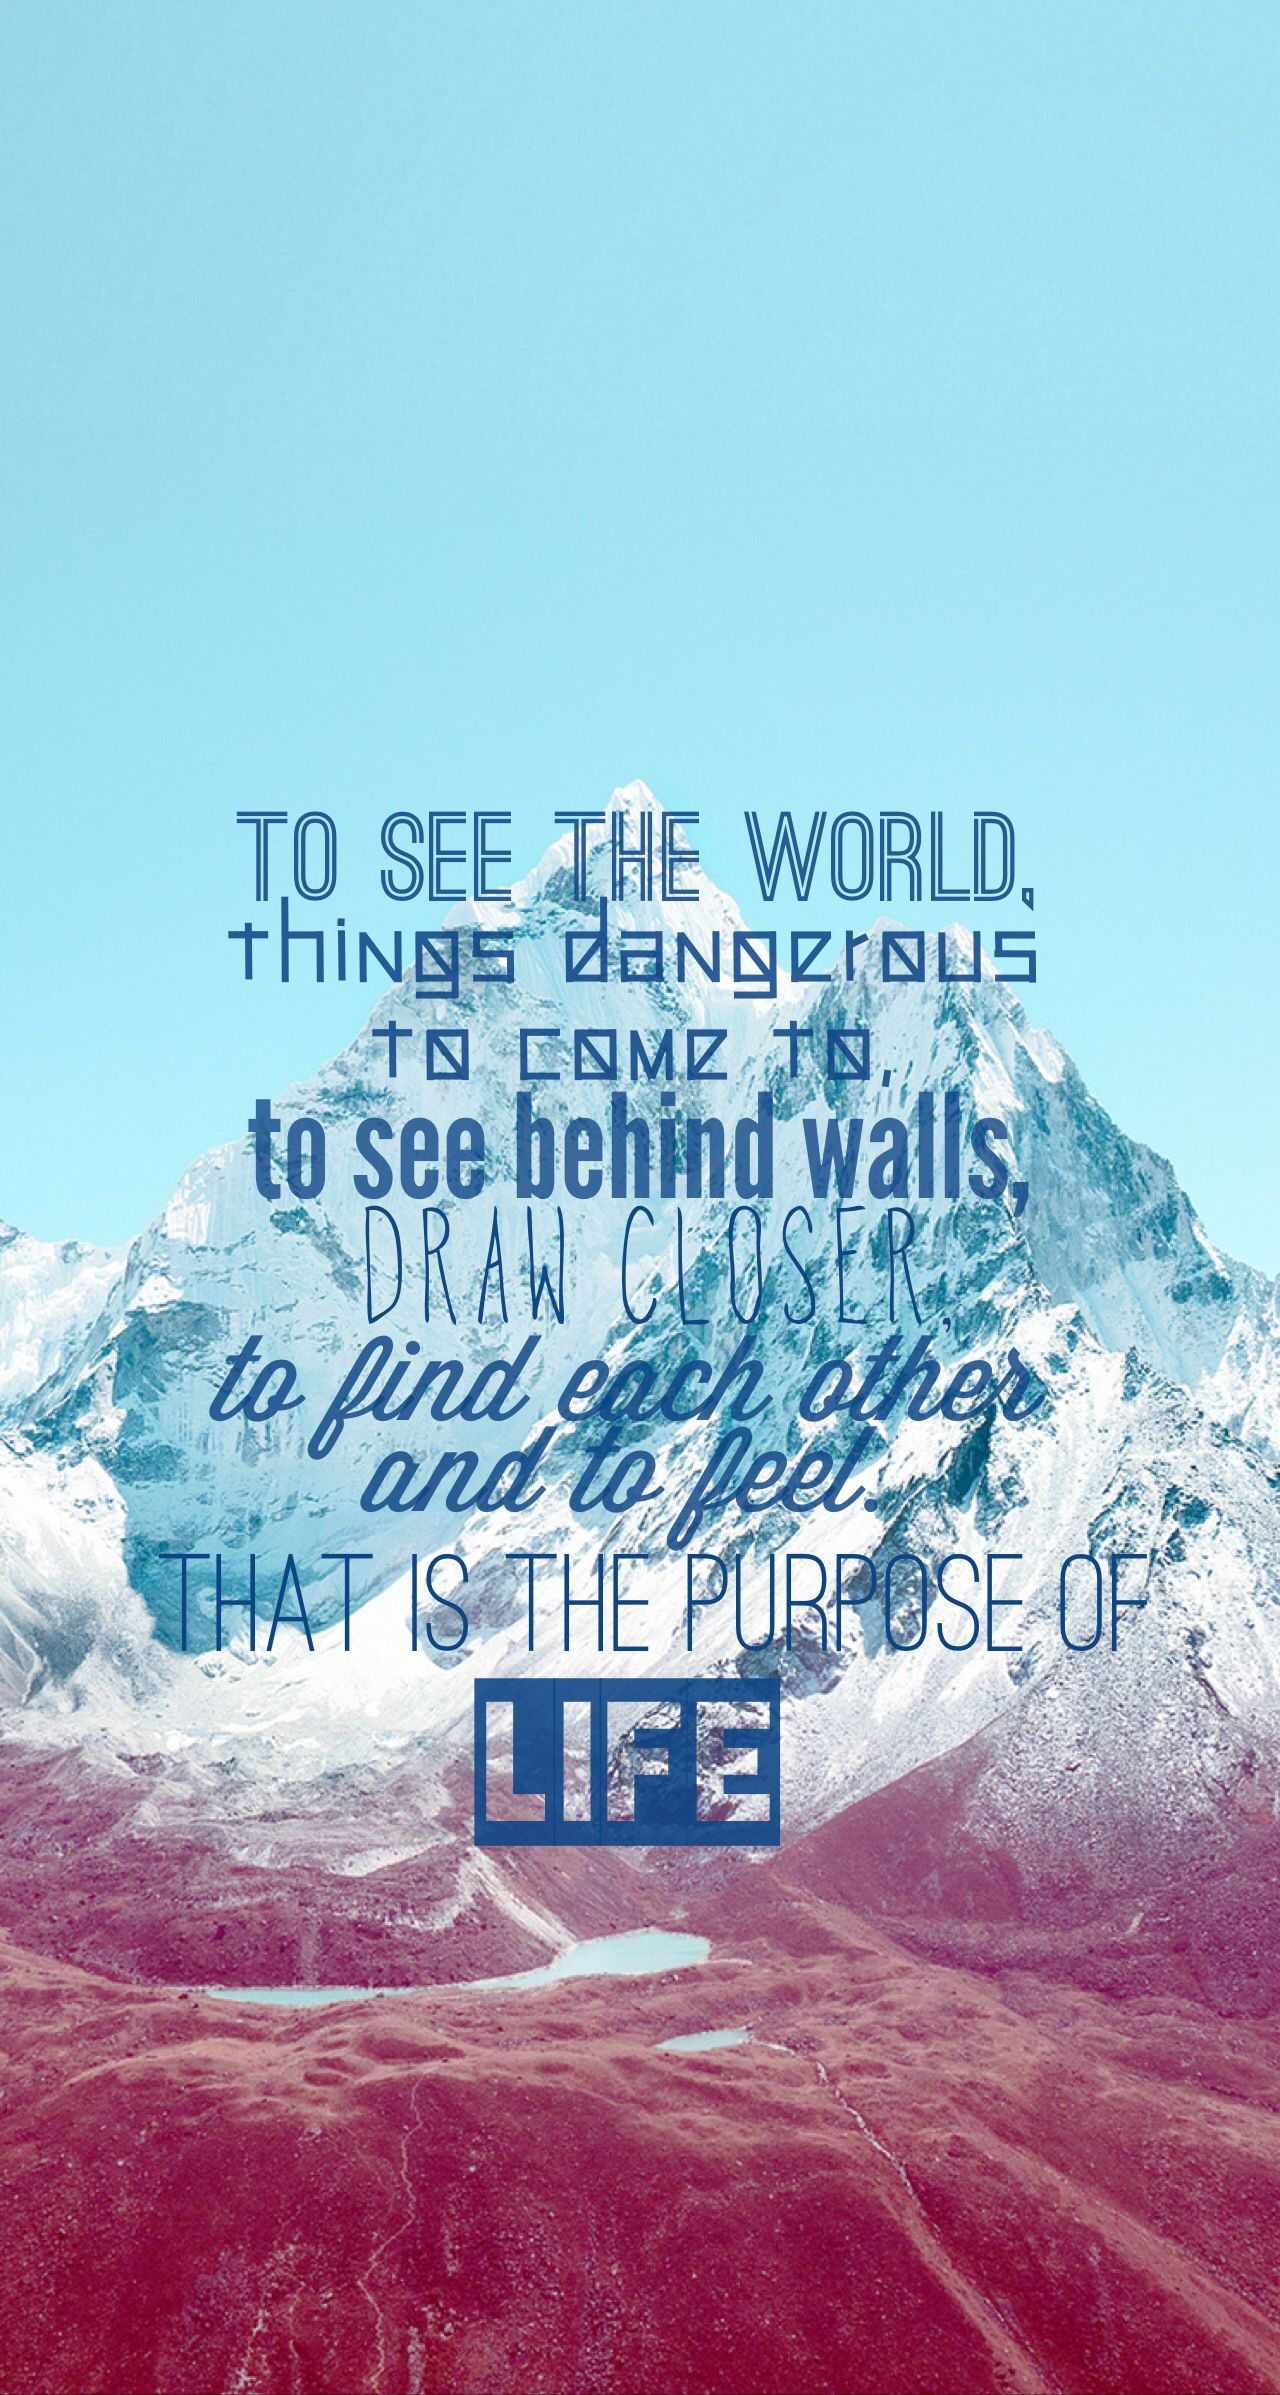 The Life Motto From The Secret Life Of Walter Mitty